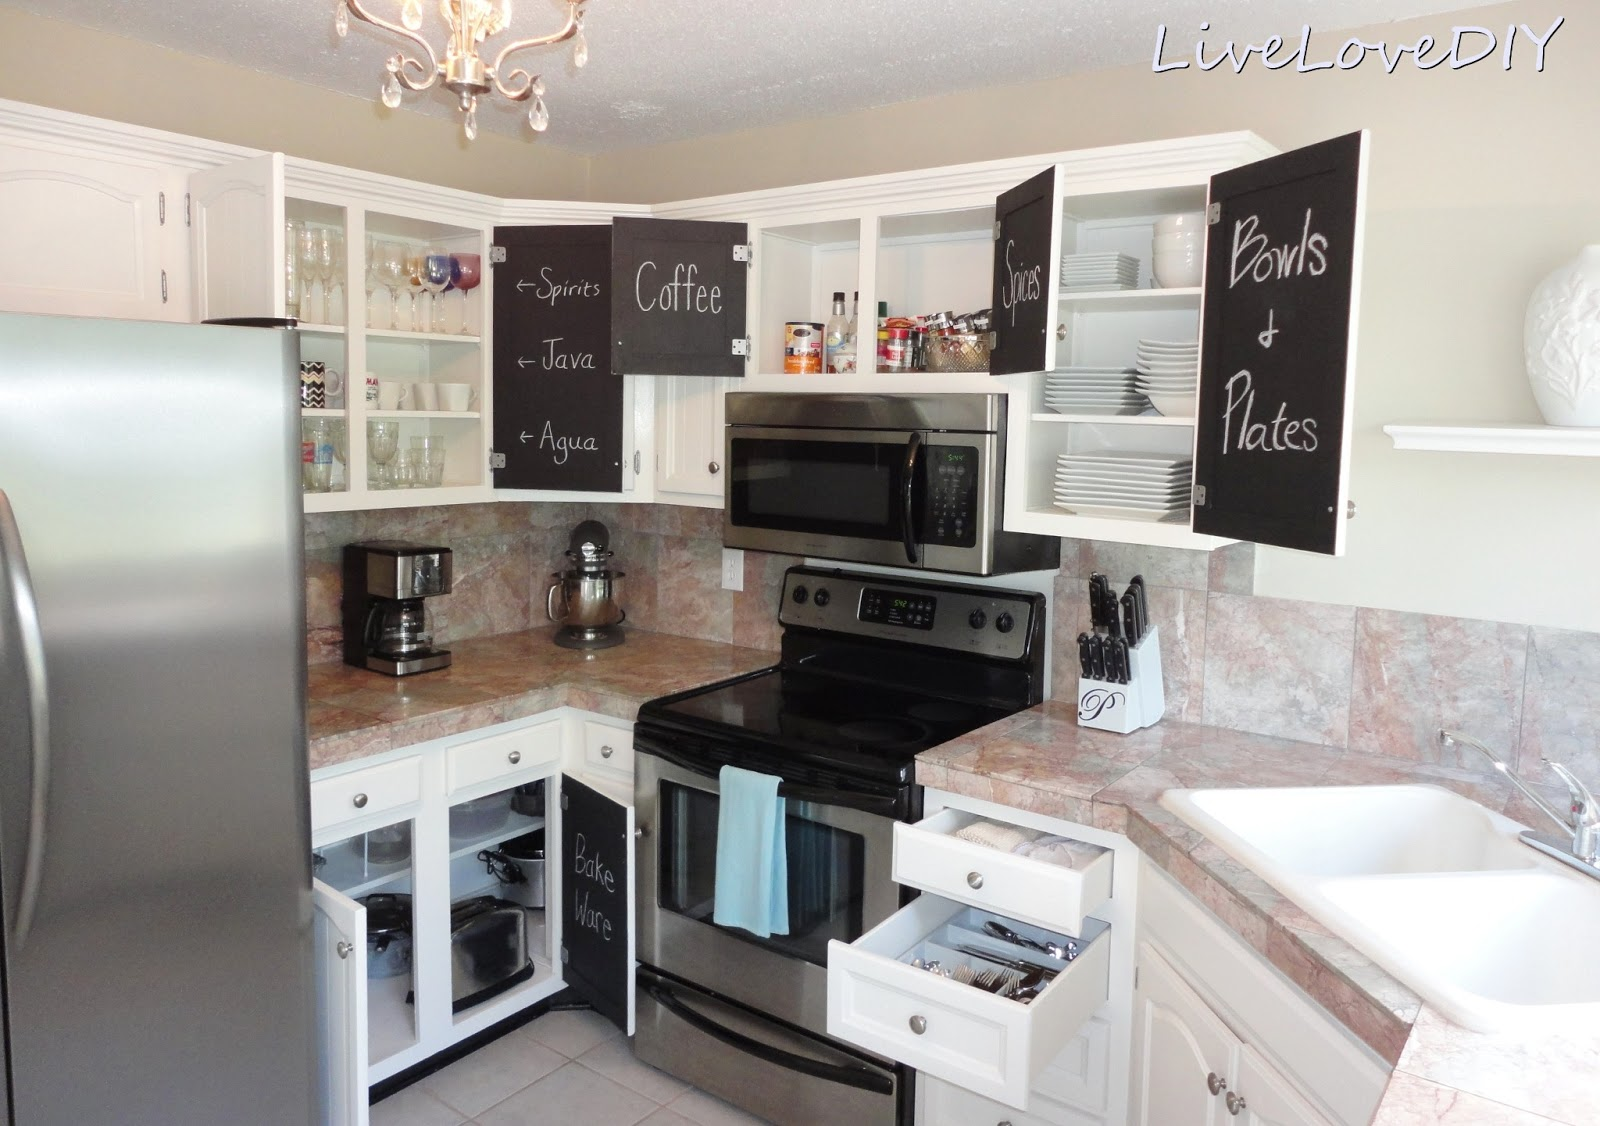 Livelovediy creative ways to update your kitchen using paint for Painting kitchen cabinets